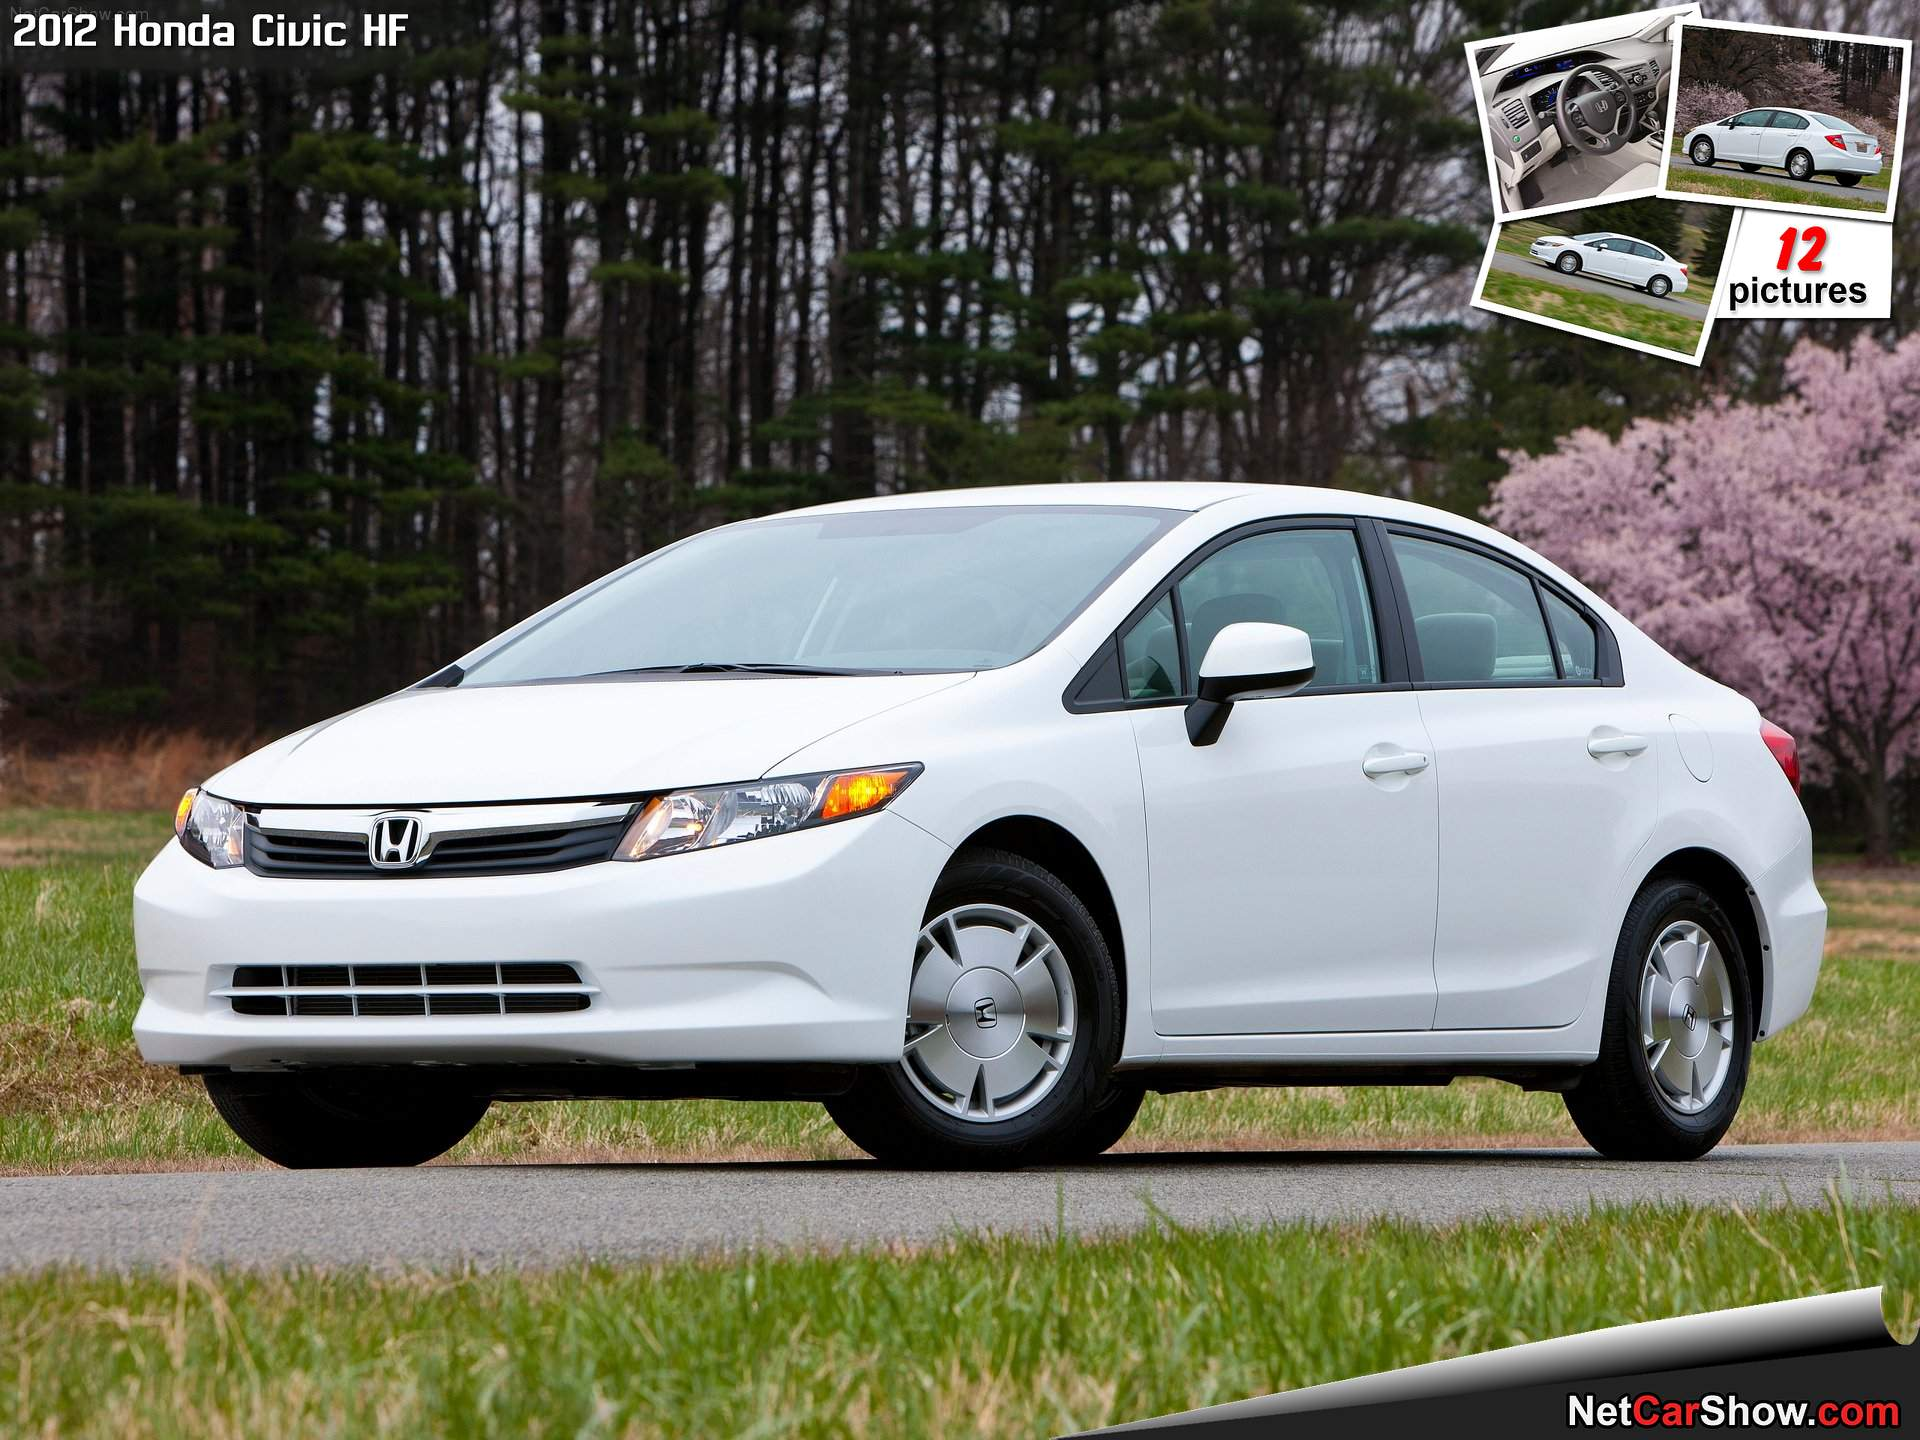 Honda-Civic_HF-2012-wallpaper